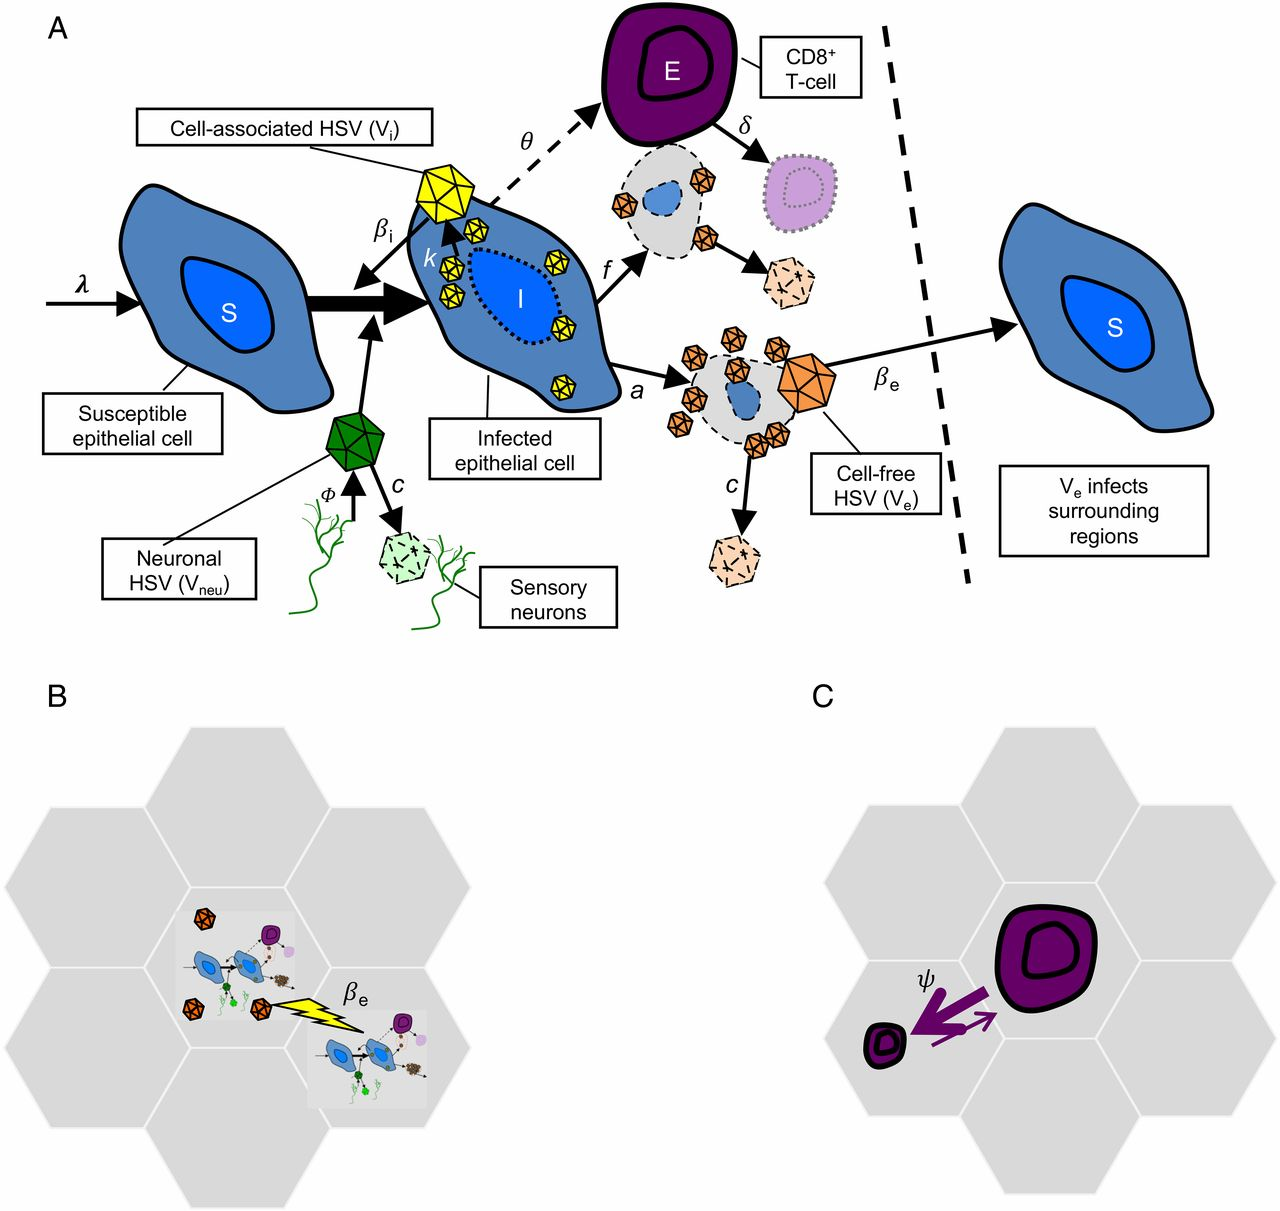 A Fixed Spatial Structure of CD8+ T Cells in Tissue during Chronic